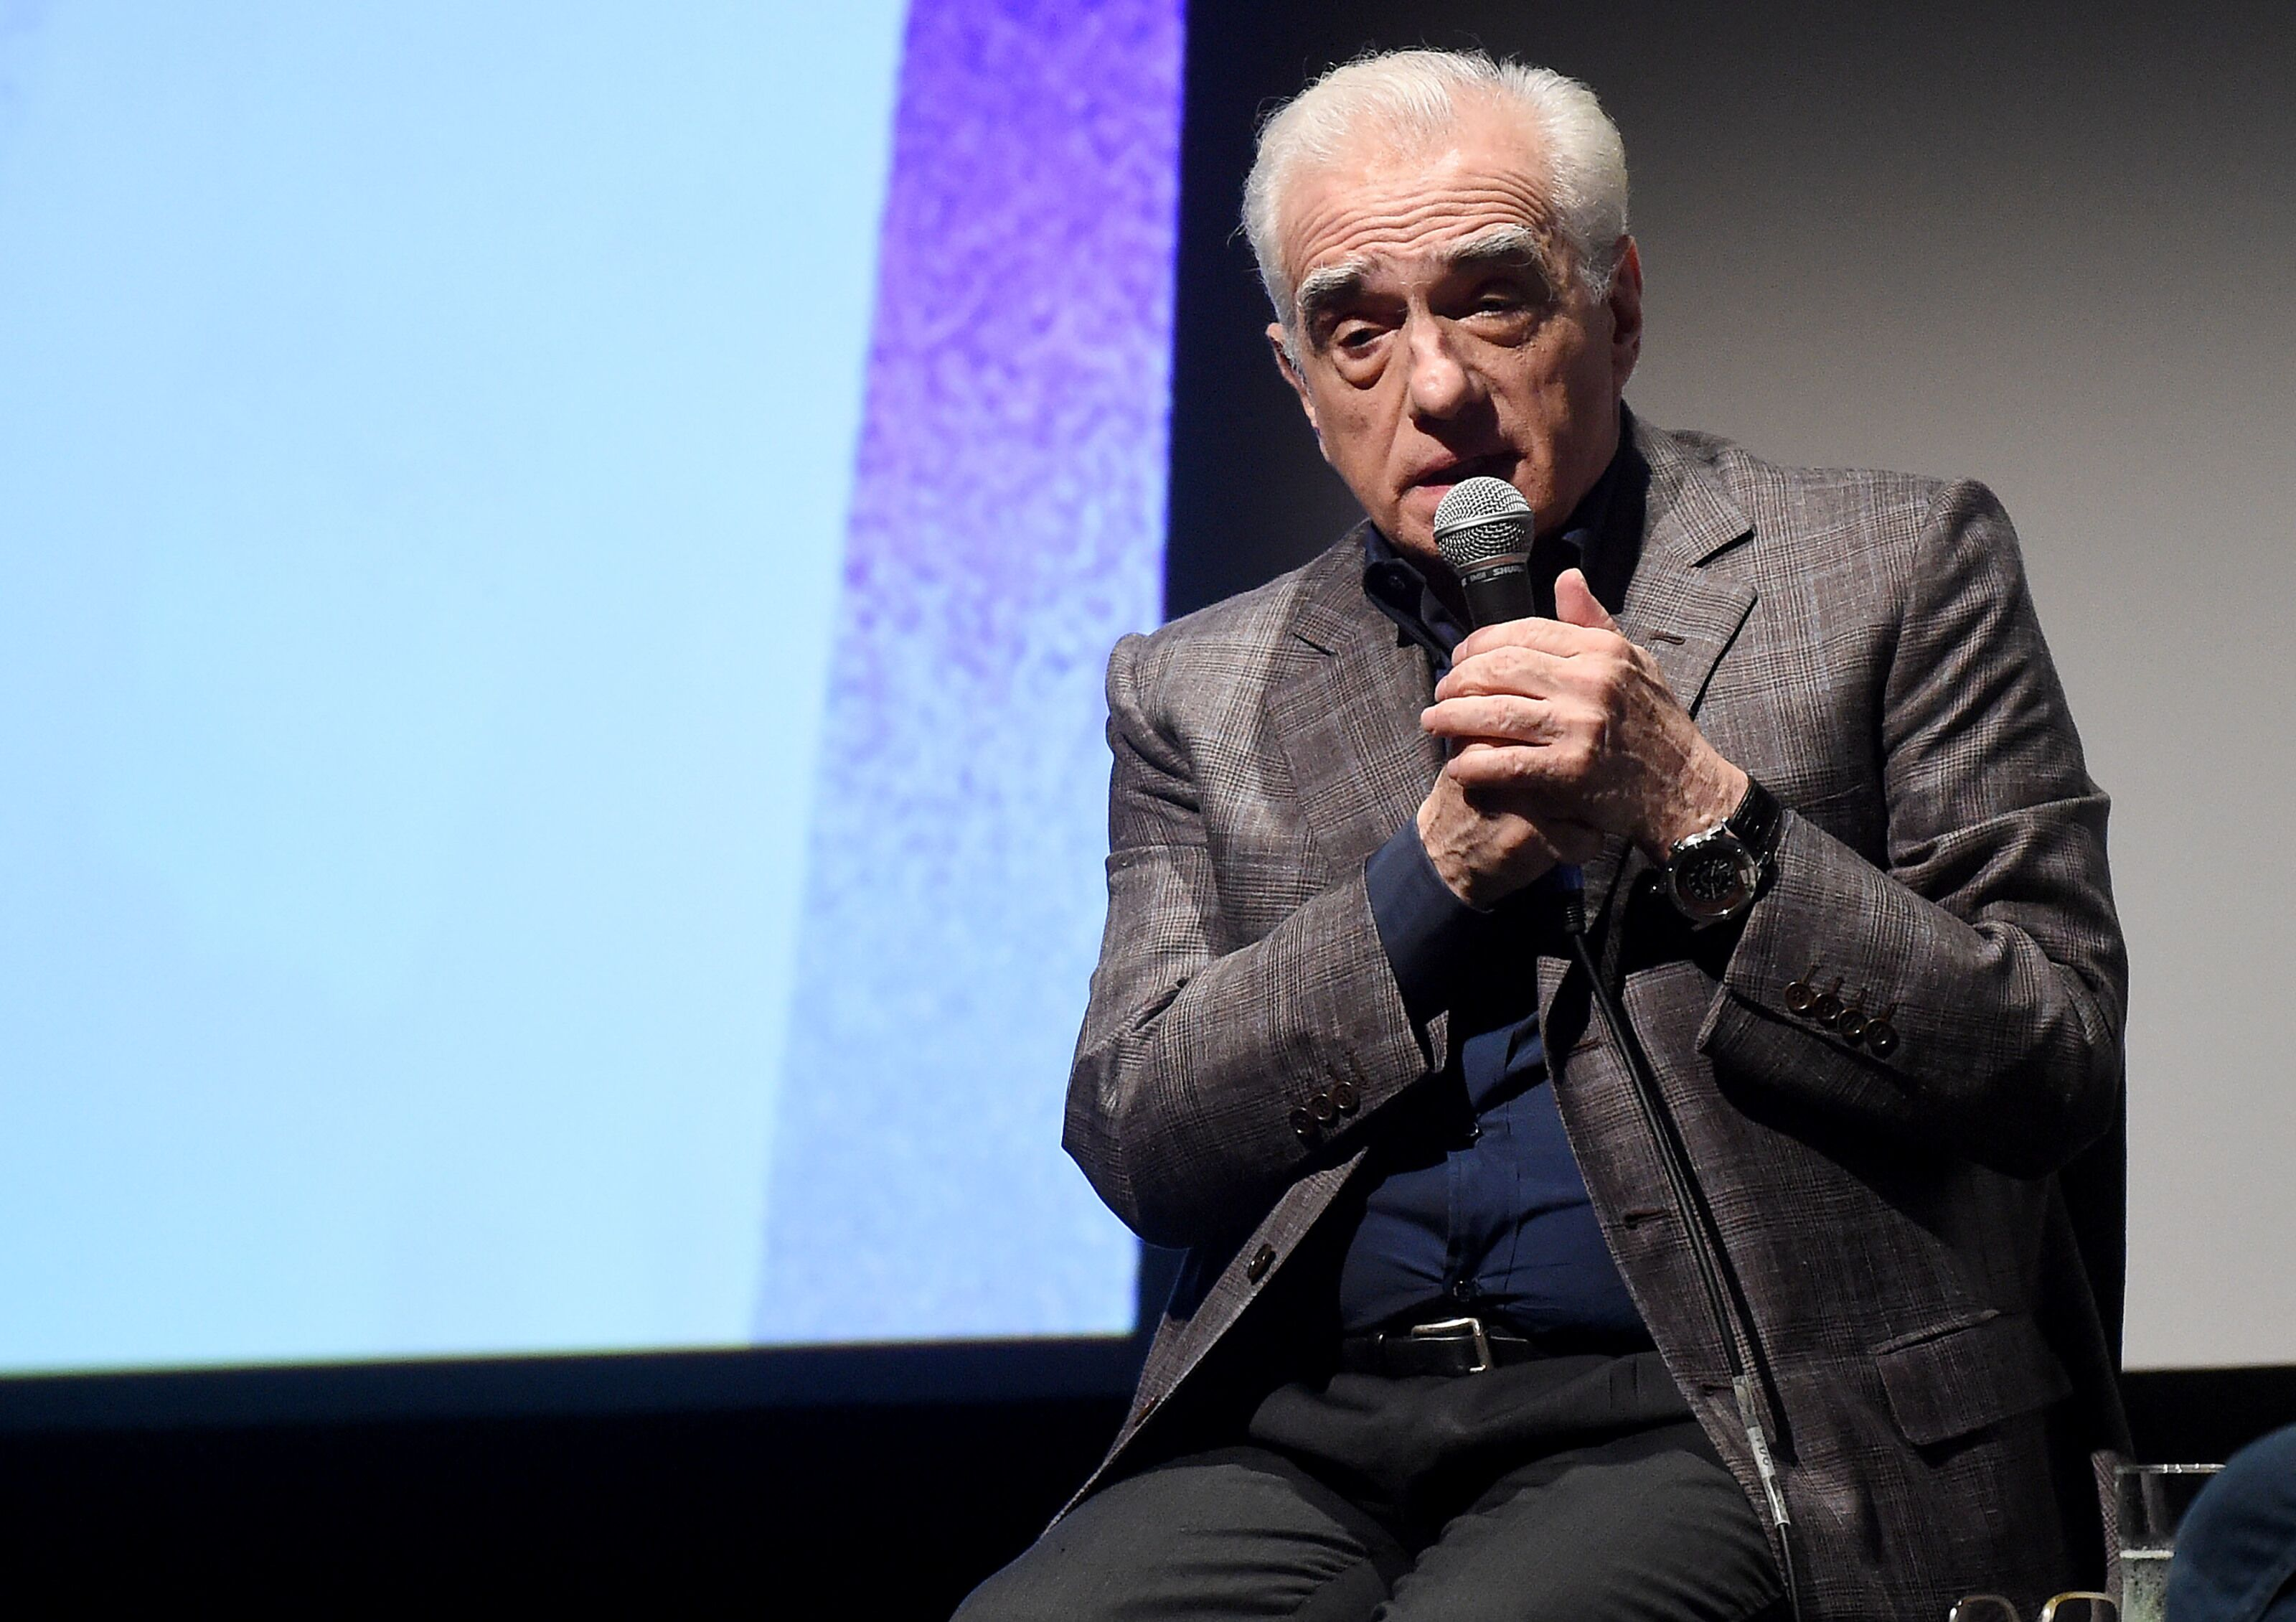 In defense of Martin Scorsese's recent Marvel comments